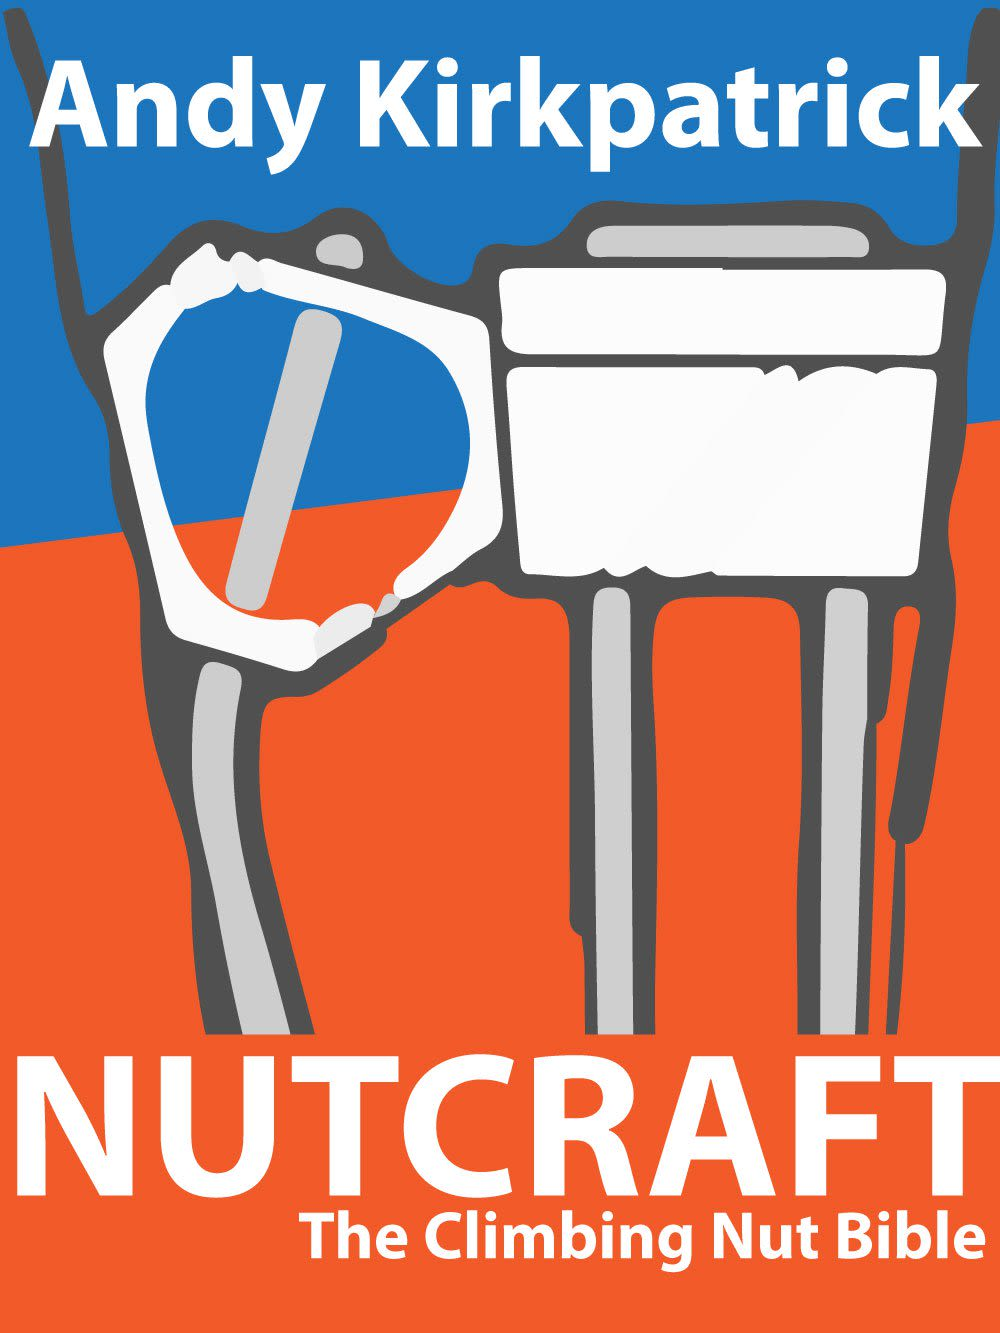 Nutcraft - The Climbing Nut Bible